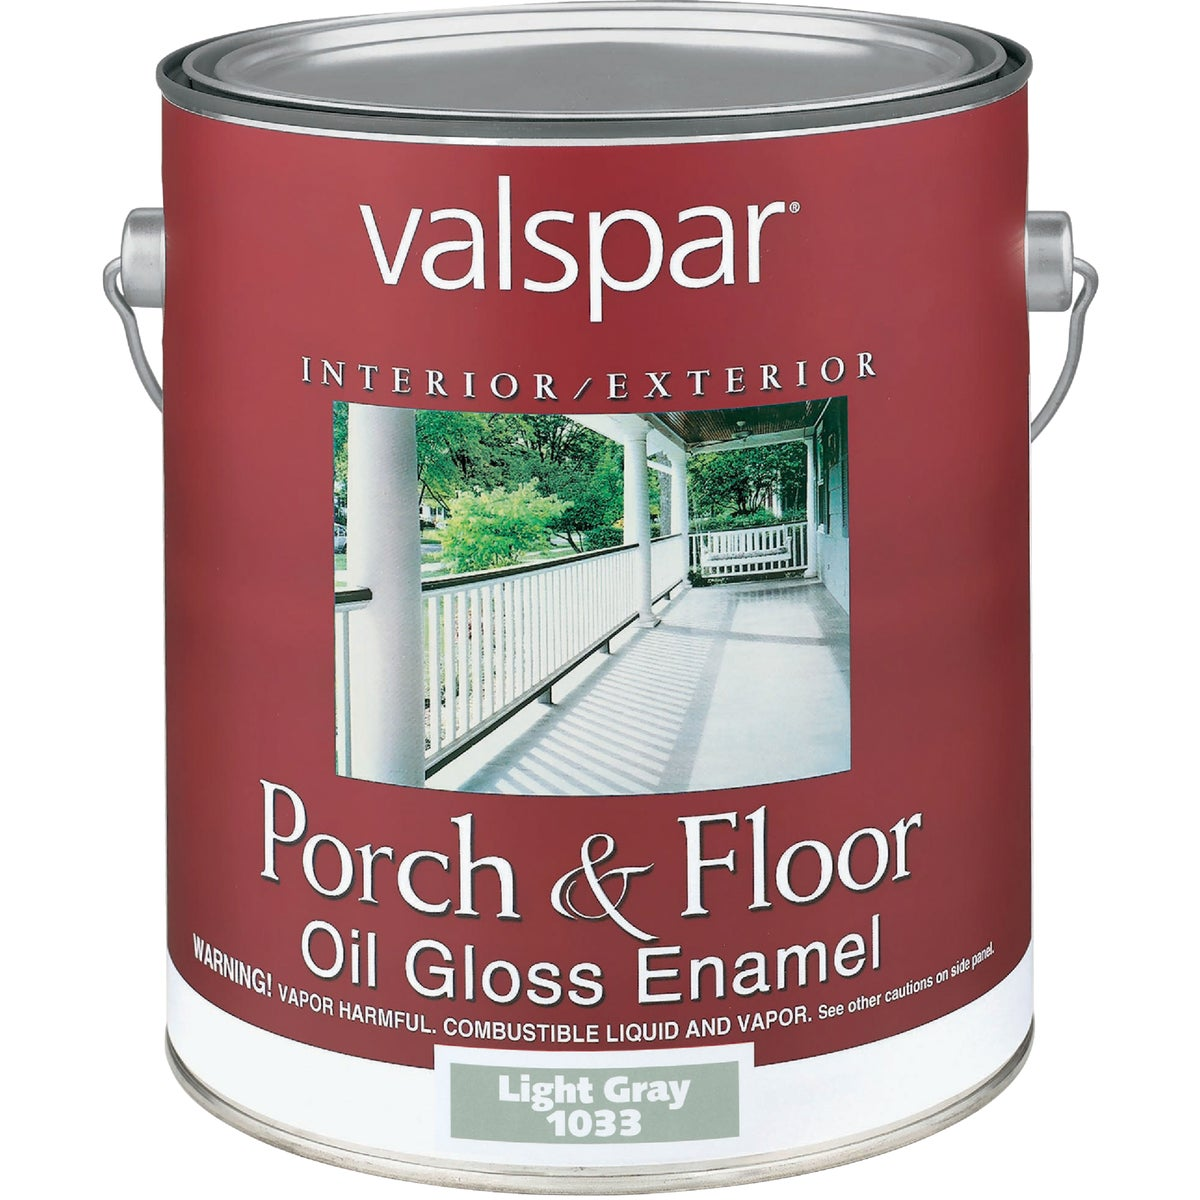 LT GRAY OIL FLOOR ENAMEL - 027.0001033.007 by Valspar Corp